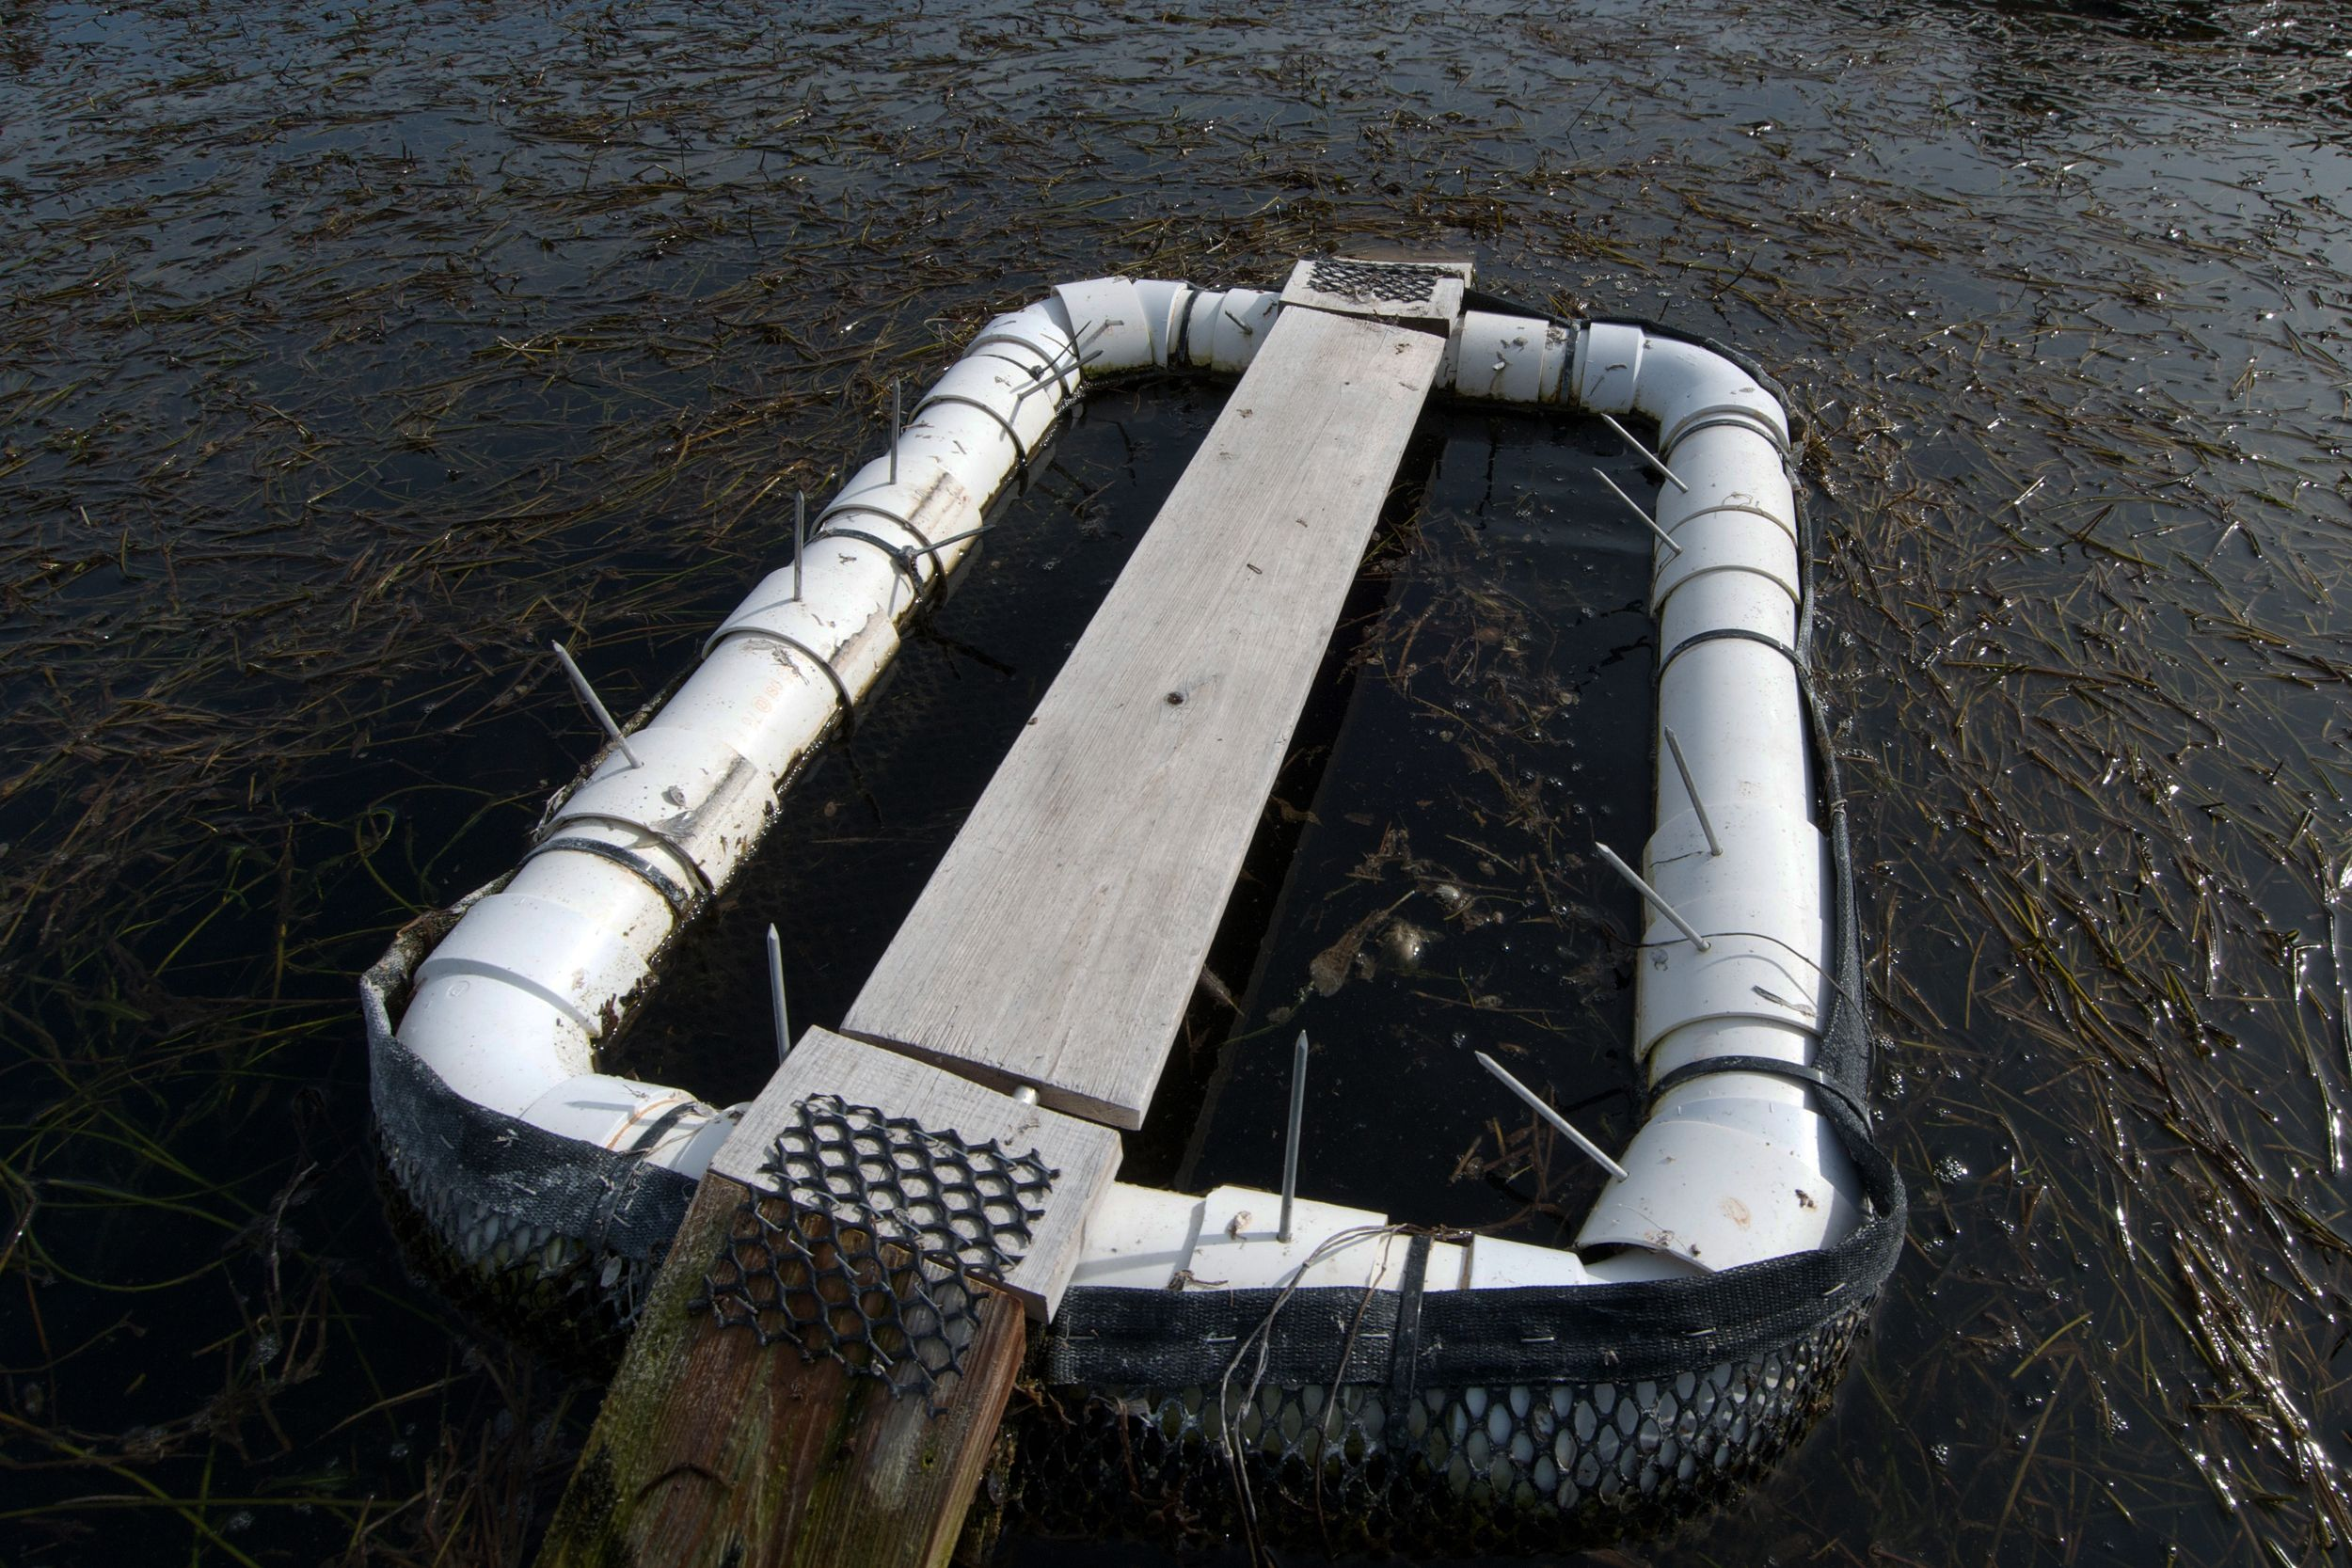 Turtle story basking trap diy projects pinterest for Pond stuff for sale